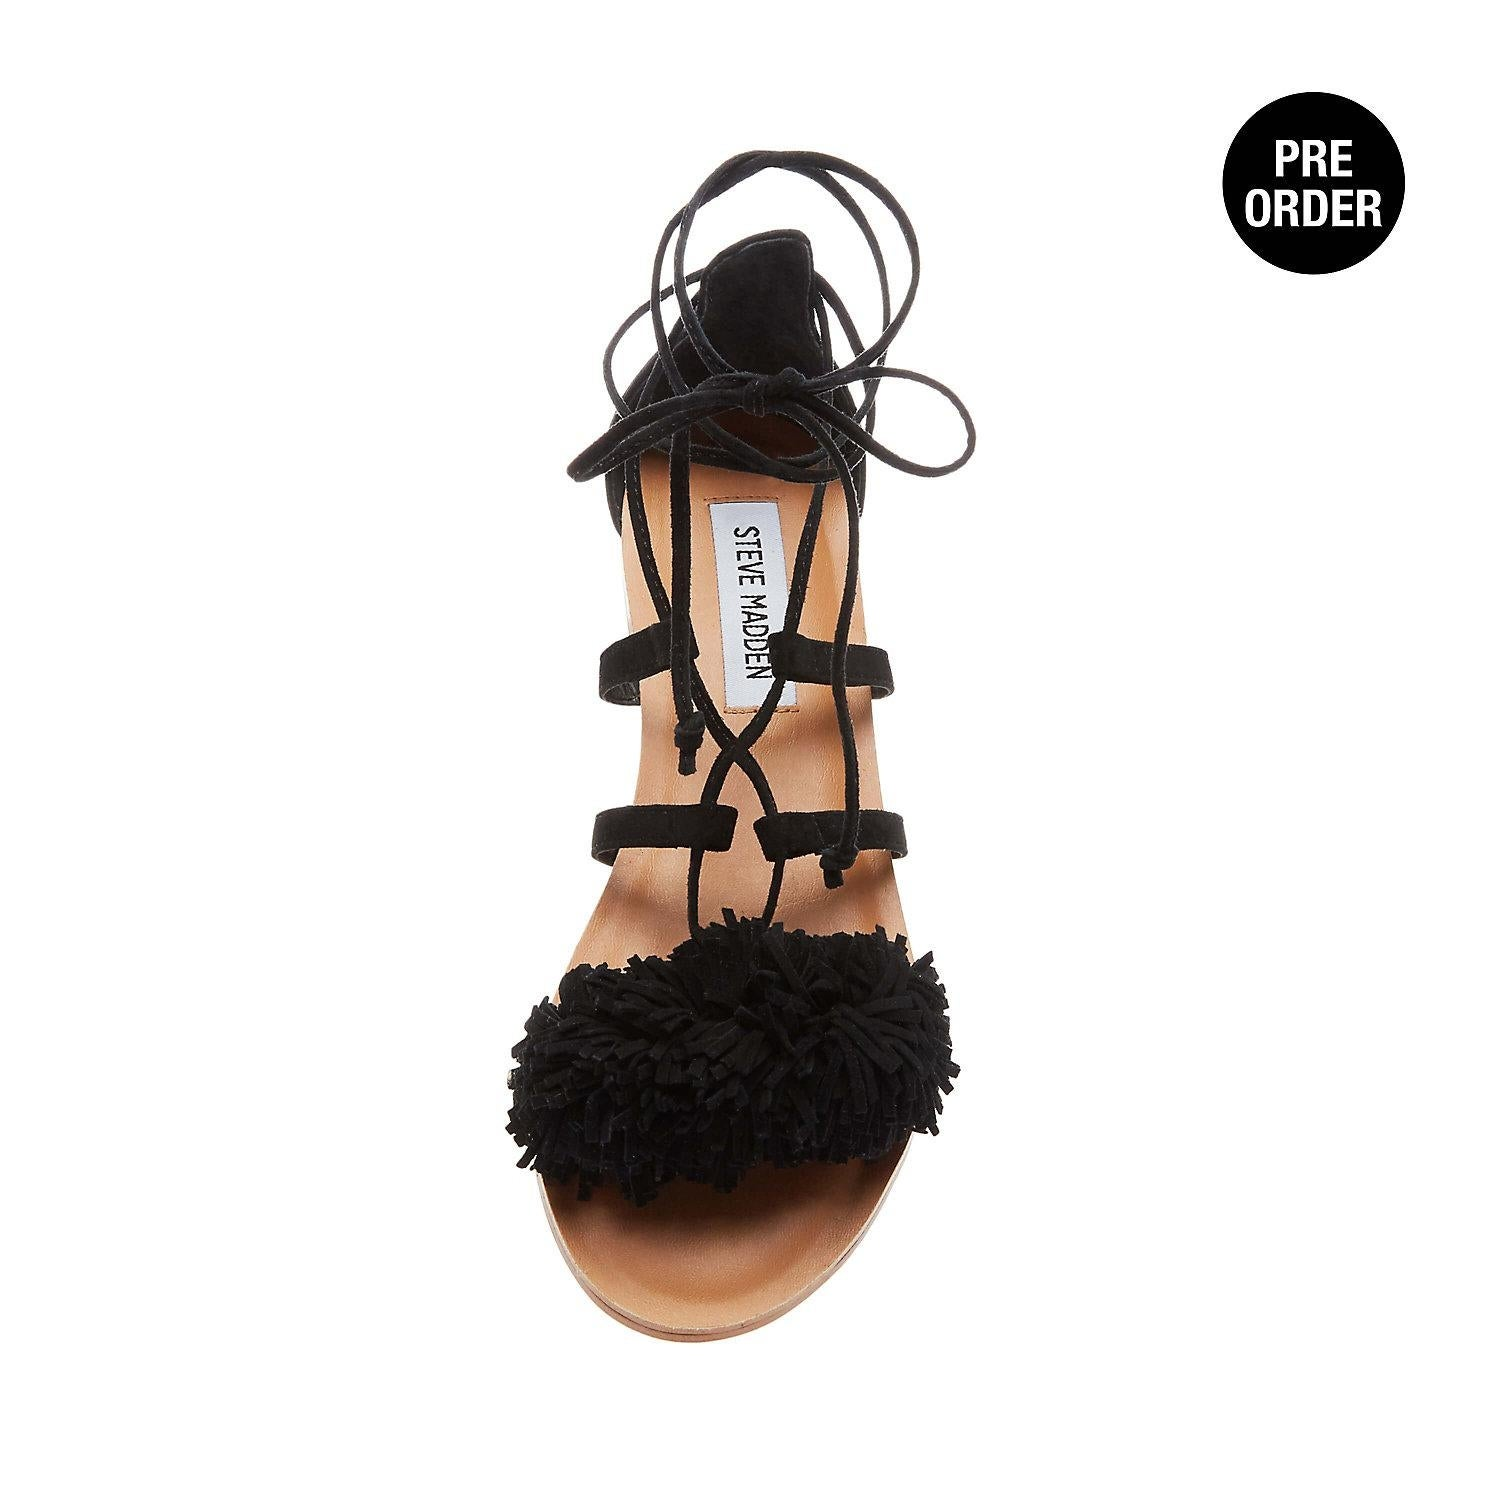 c50163d2badd61 Shop Steve Madden Womens Swizzle Leather Open Toe Casual Strappy Sandals -  Free Shipping On Orders Over  45 - Overstock.com - 19857308